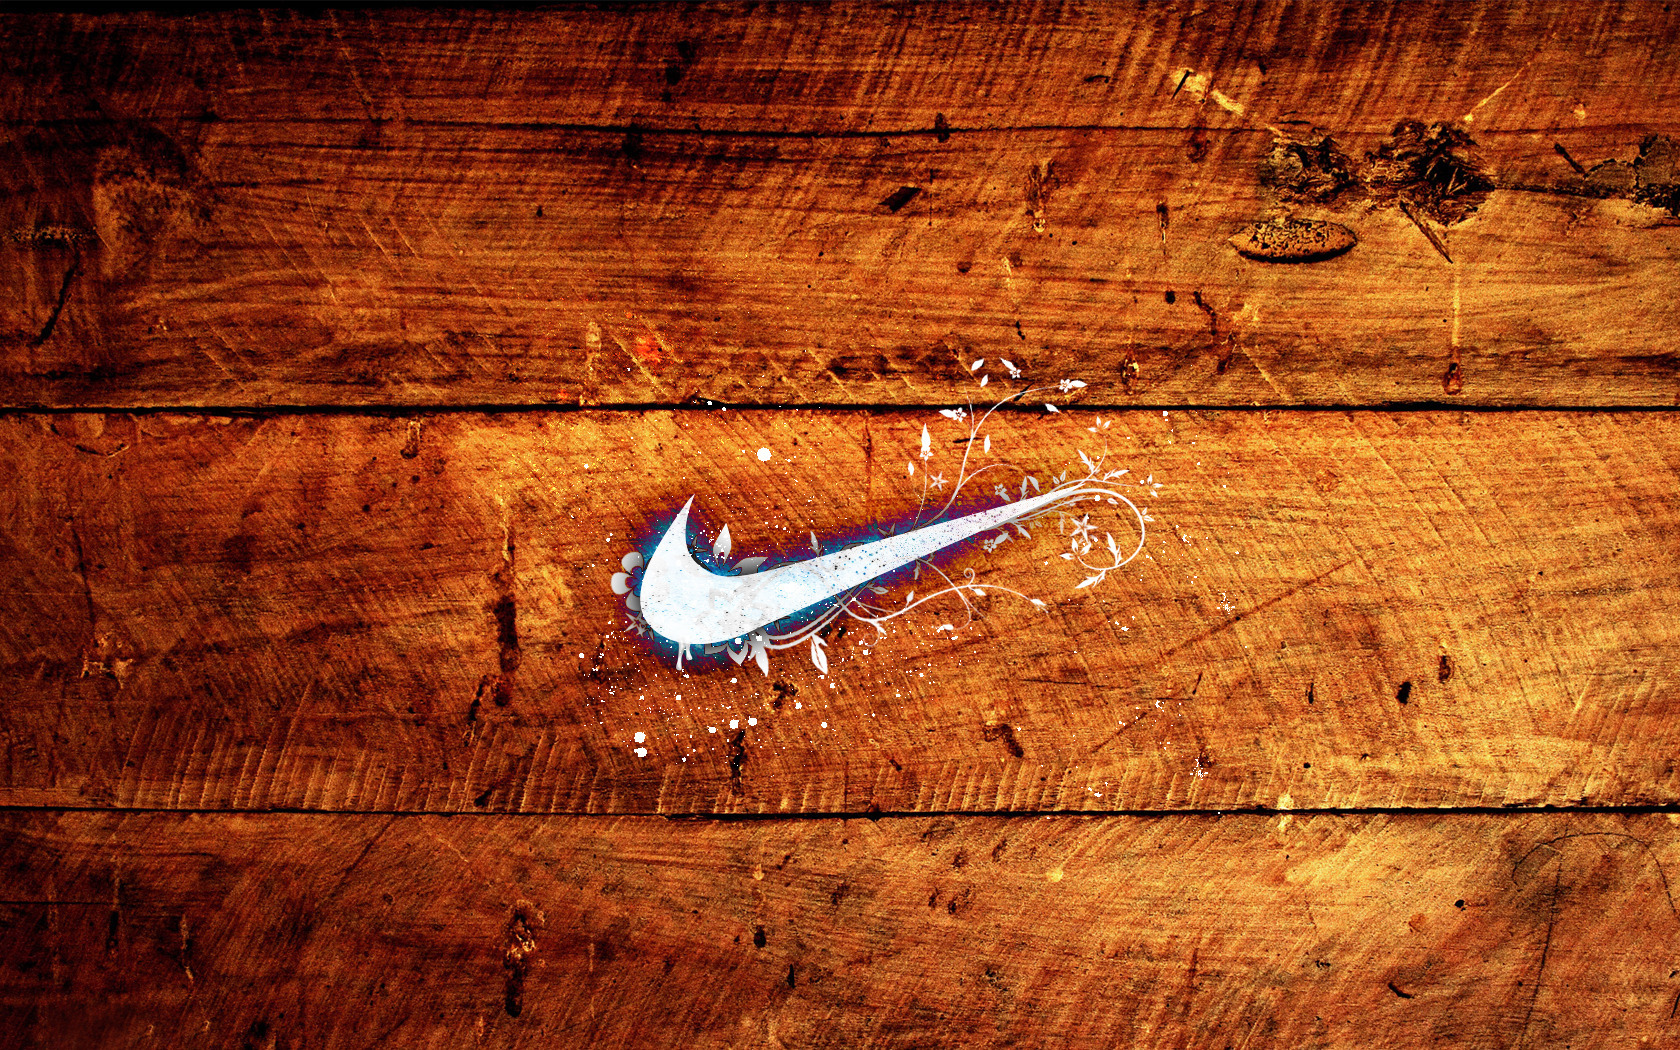 nike wood texture, download photo, planking, tree wood